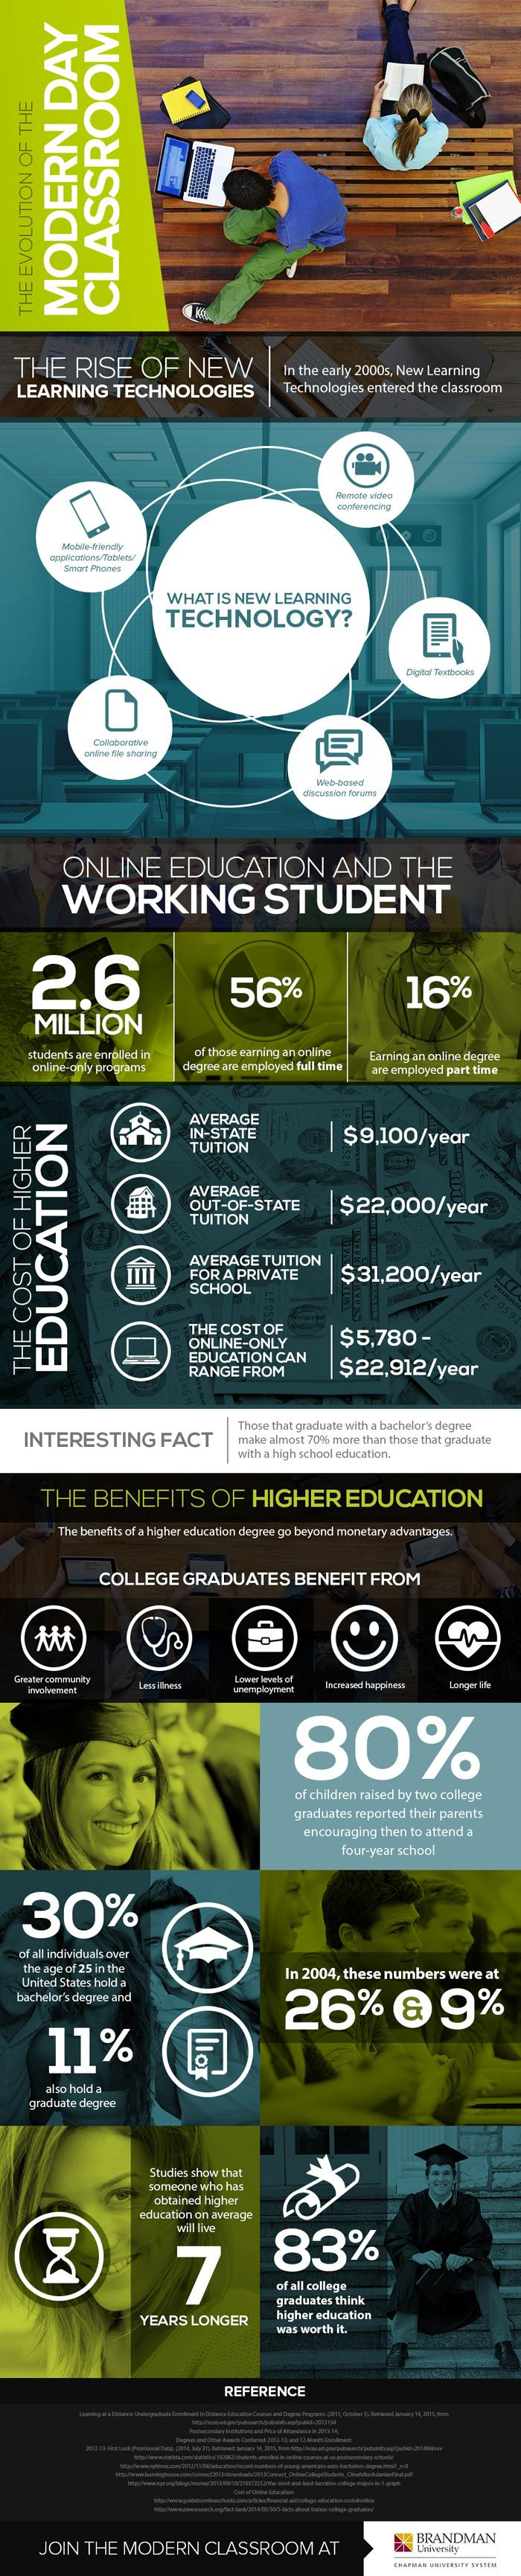 new age classrooms infographic